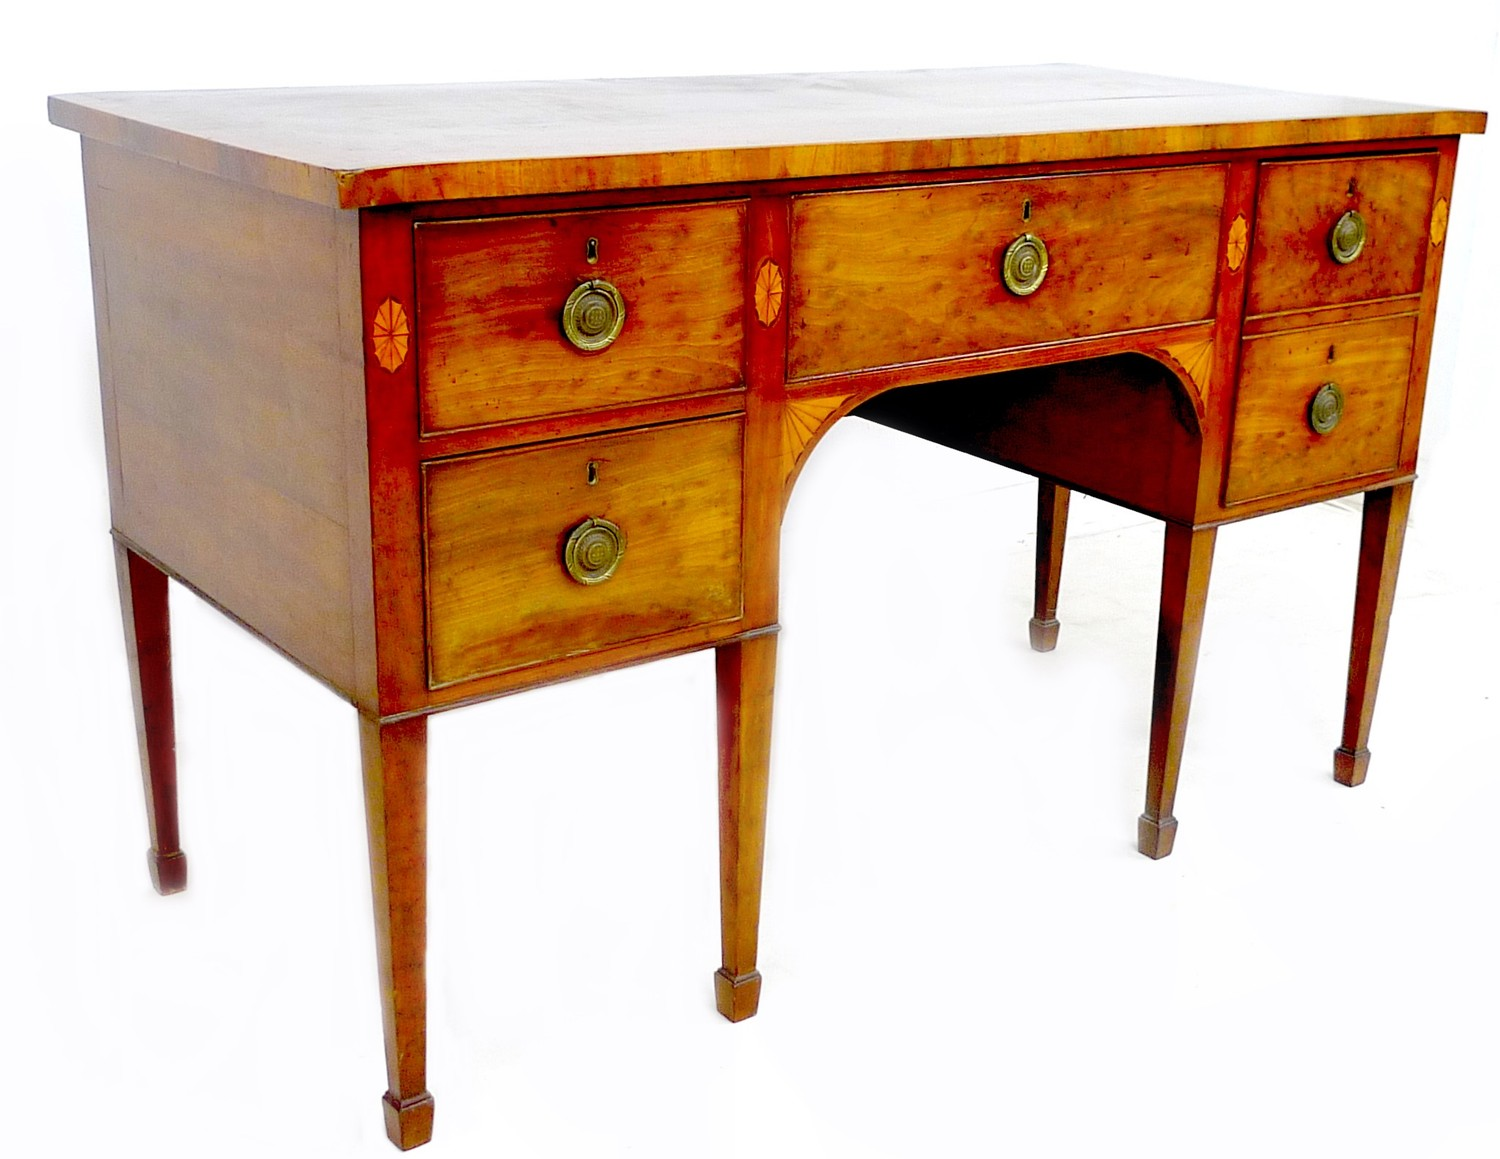 A George III mahogany and fan paterae inlaid sideboard, with five drawers, brass ring handles, - Image 2 of 2